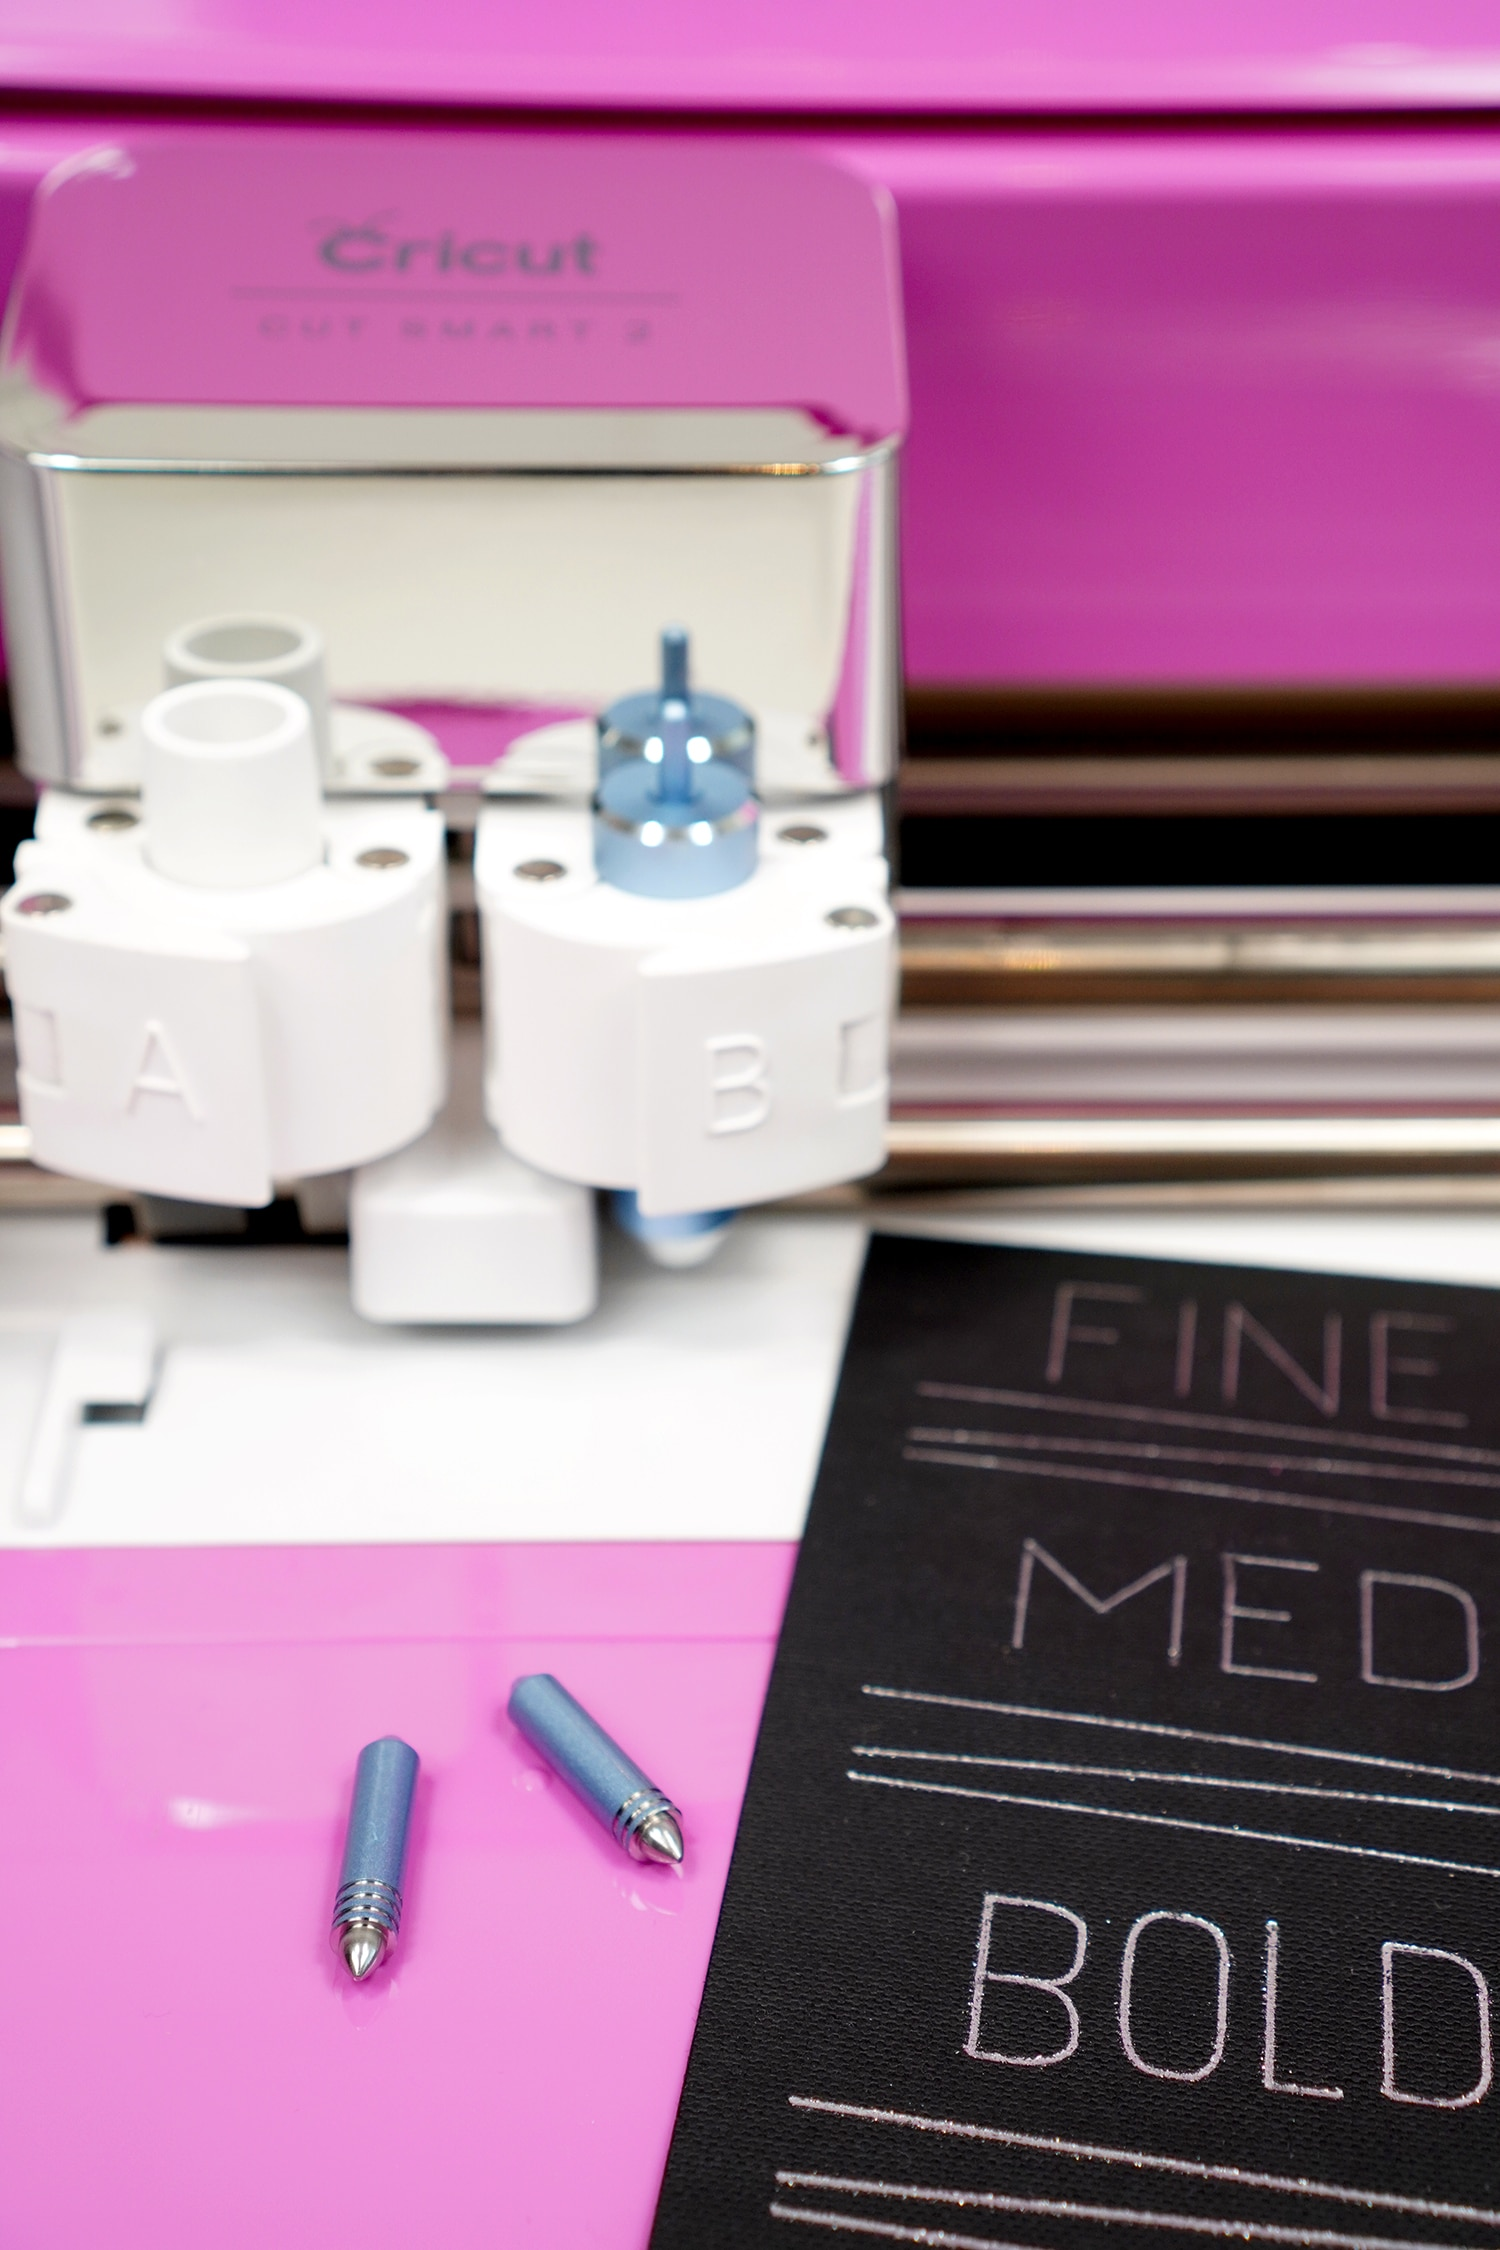 Cricut Explore Air 2 and Foil Transfer System Tool and Tips